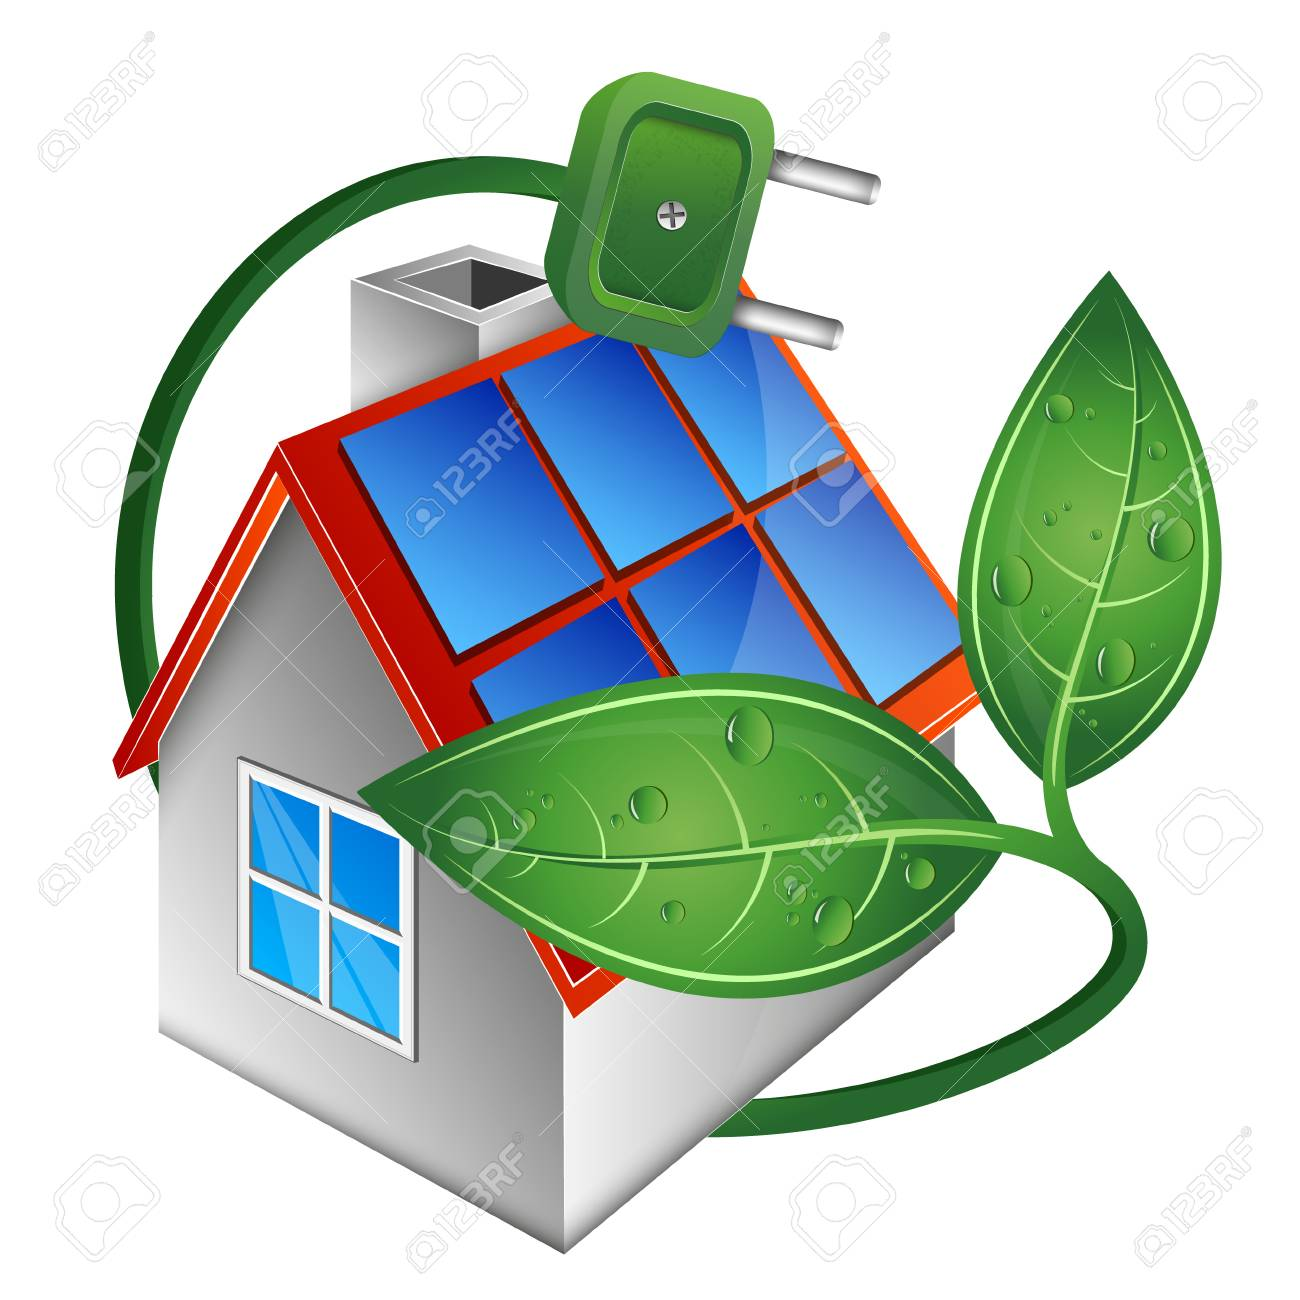 Alternative energy for the home: an overview of non-standard sources of energy modern solutions 46